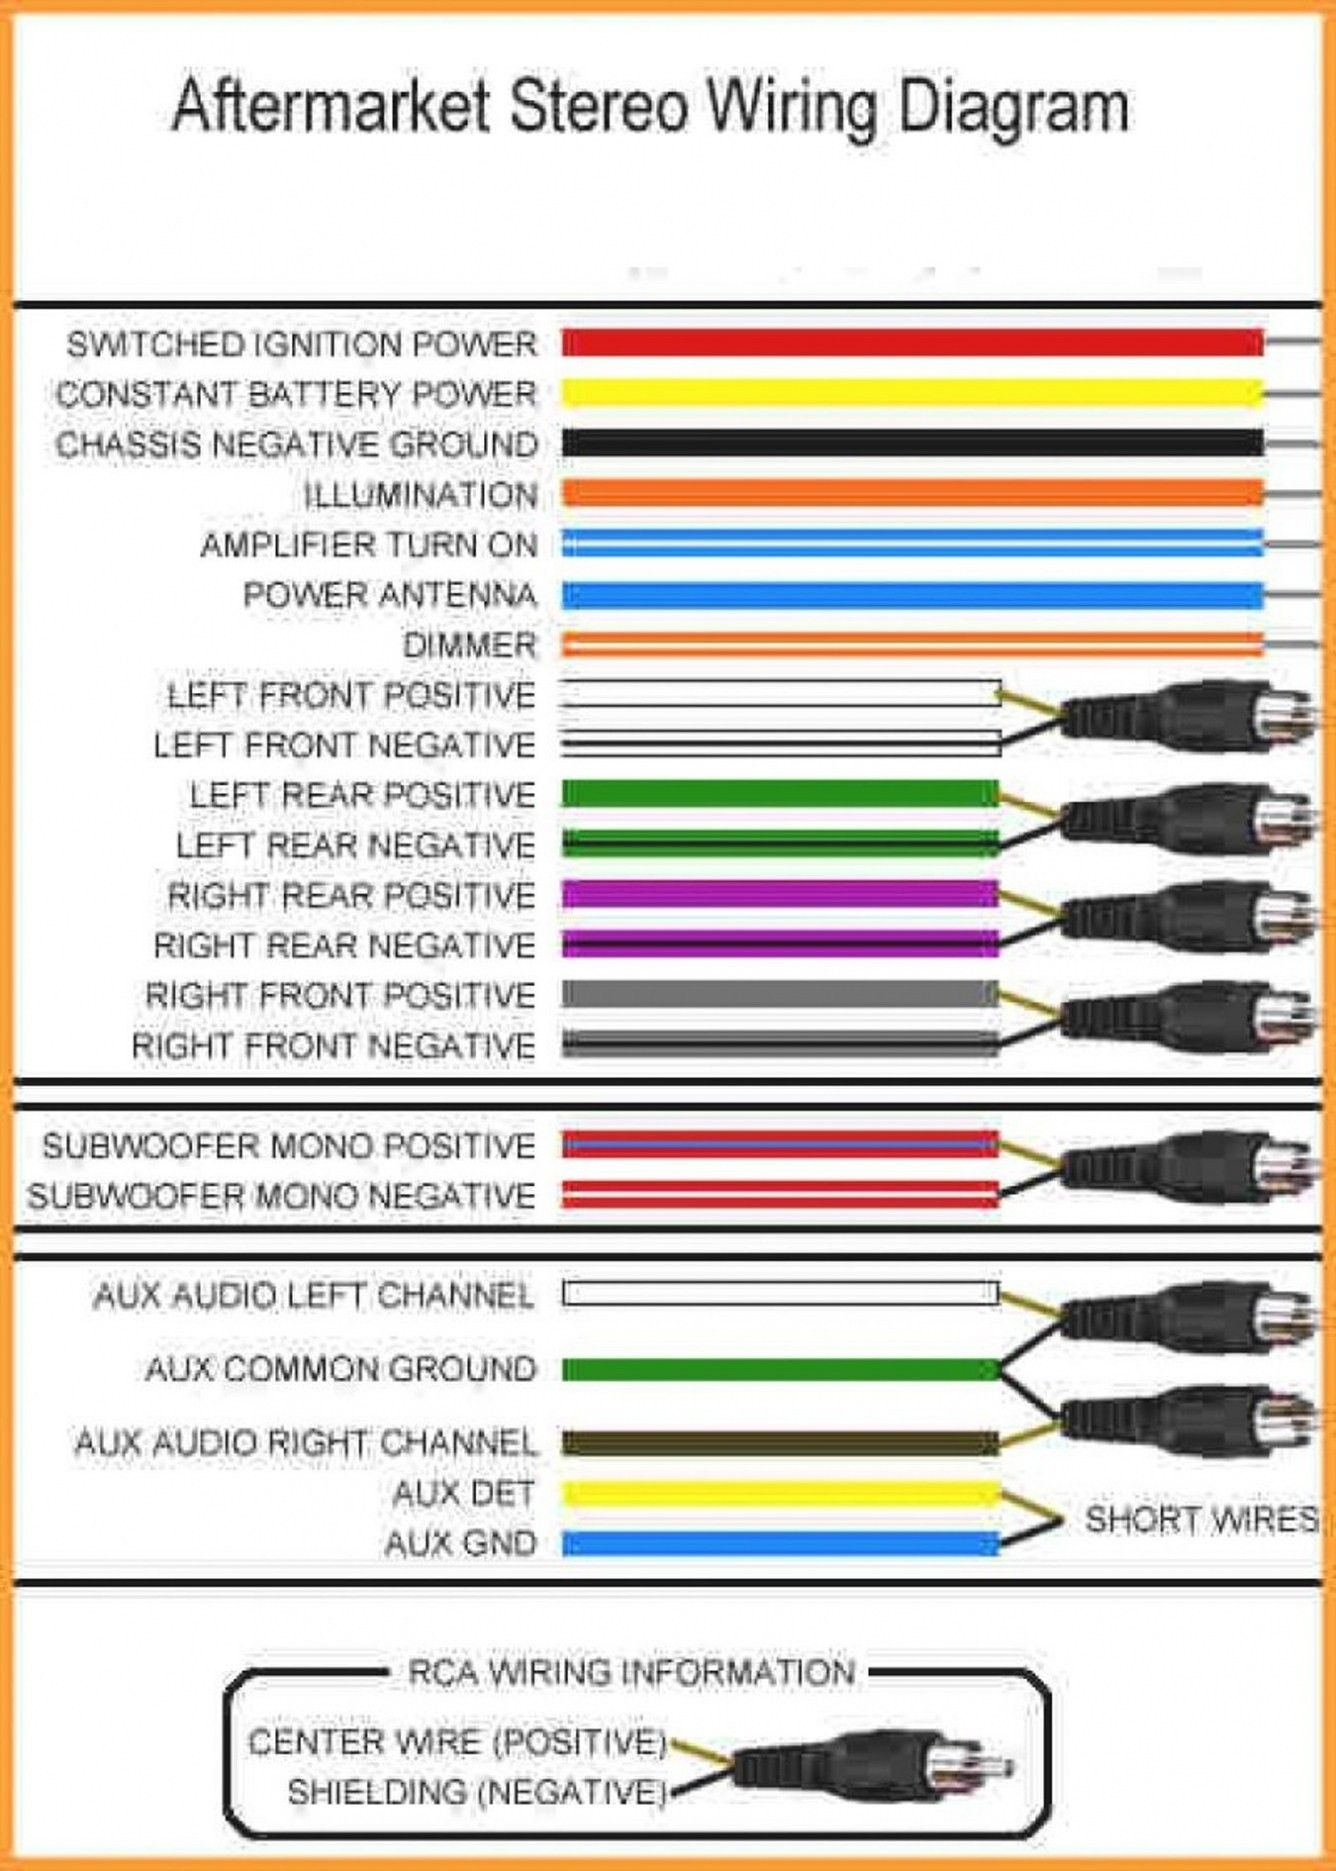 Unique Marine Wire Colors Diagram Wiringdiagram Diagramming Diagramm Visuals Visualisation Graphical Check Sony Car Stereo Kenwood Car Subwoofer Wiring